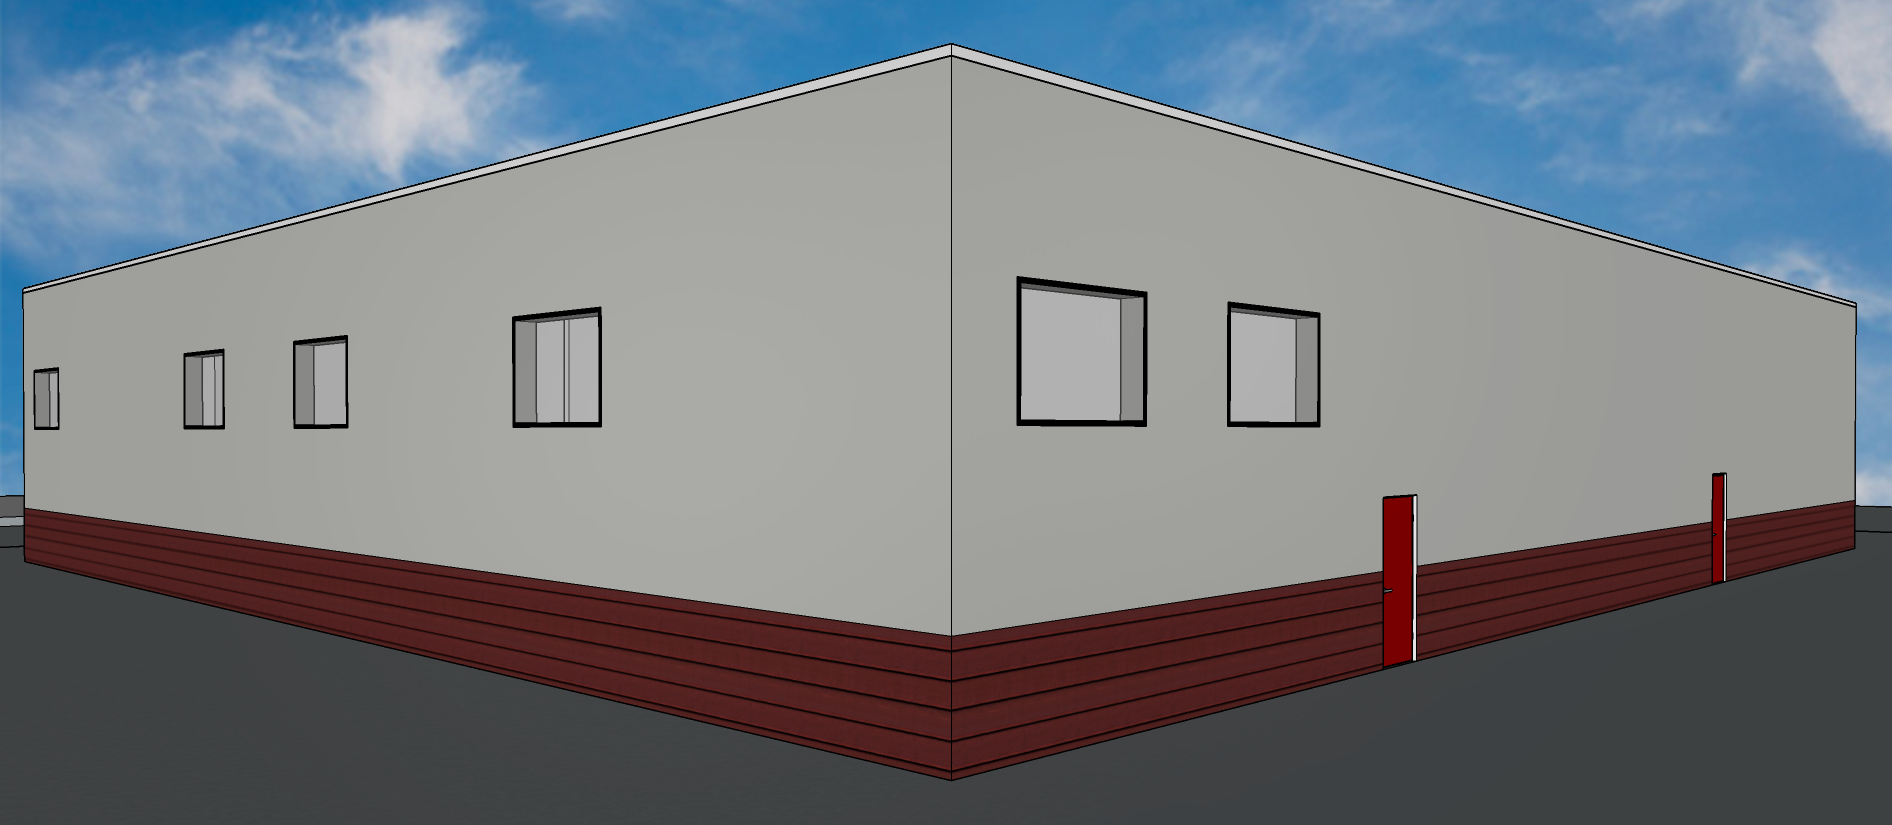 100120thAve_SouthWest Facing.png